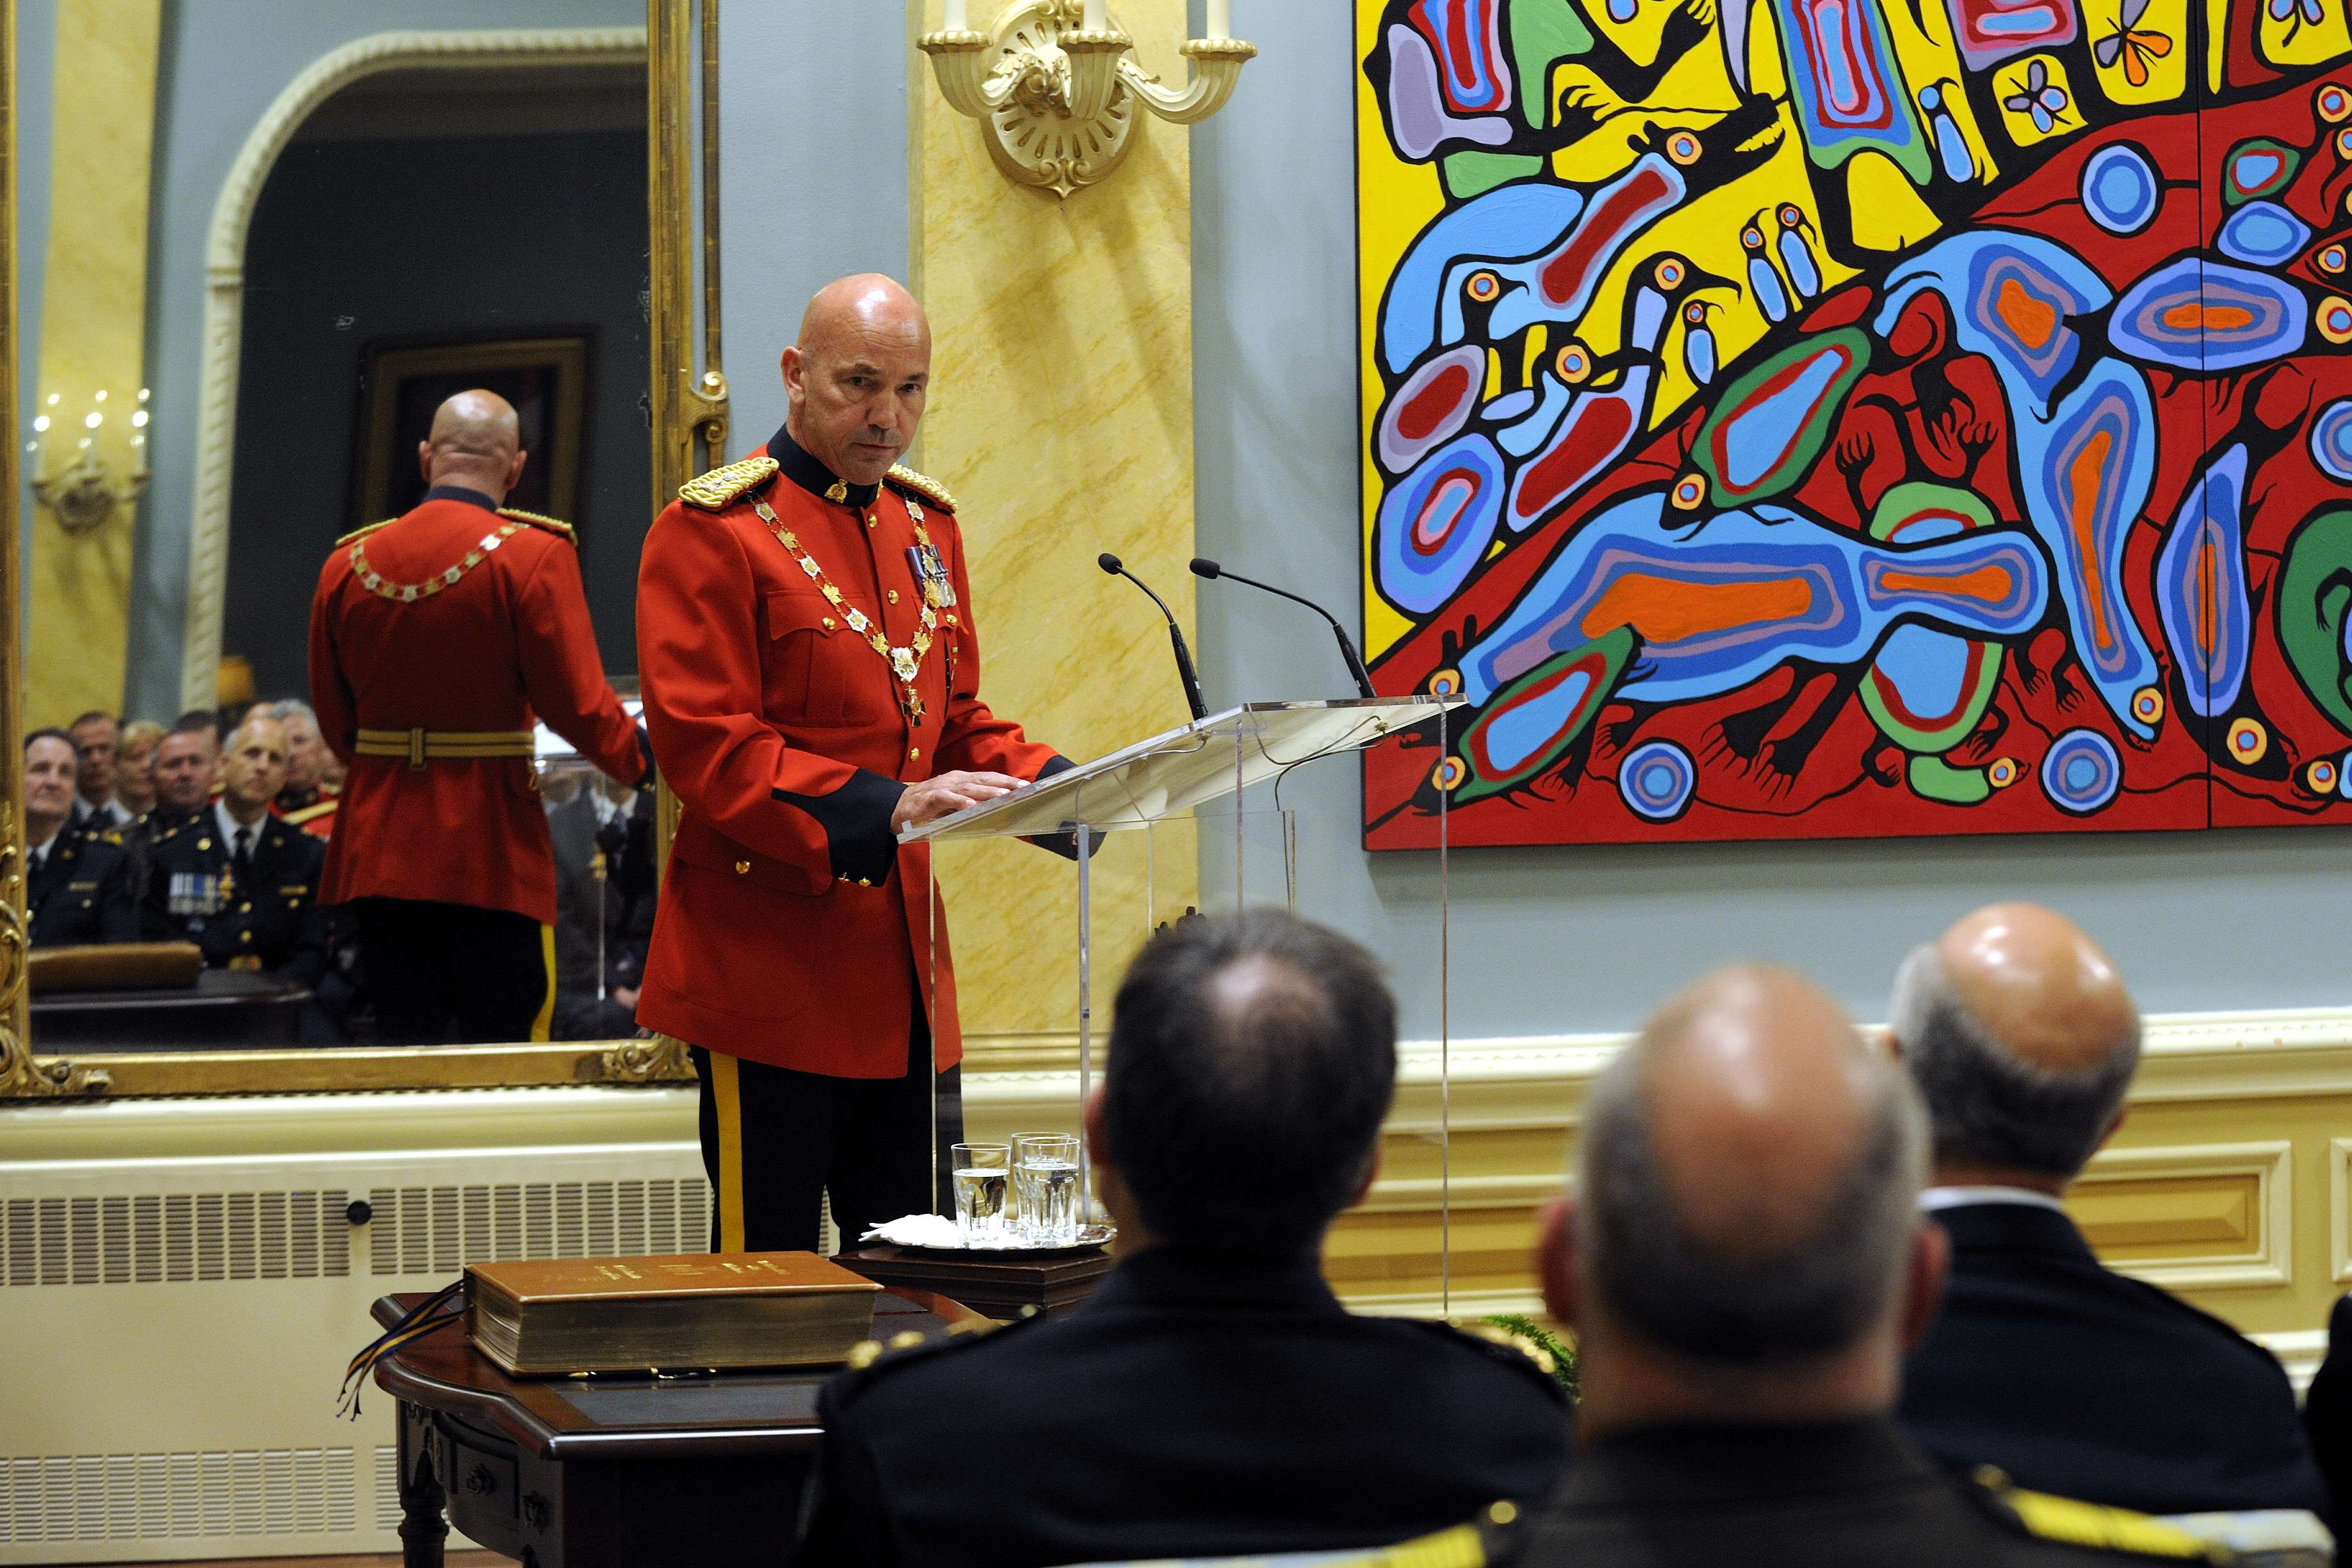 Robert Paulson, C.O.M., Commissioner of the Royal Canadian Mounted Police and Principal Commander of the Order, also spoke during this event.